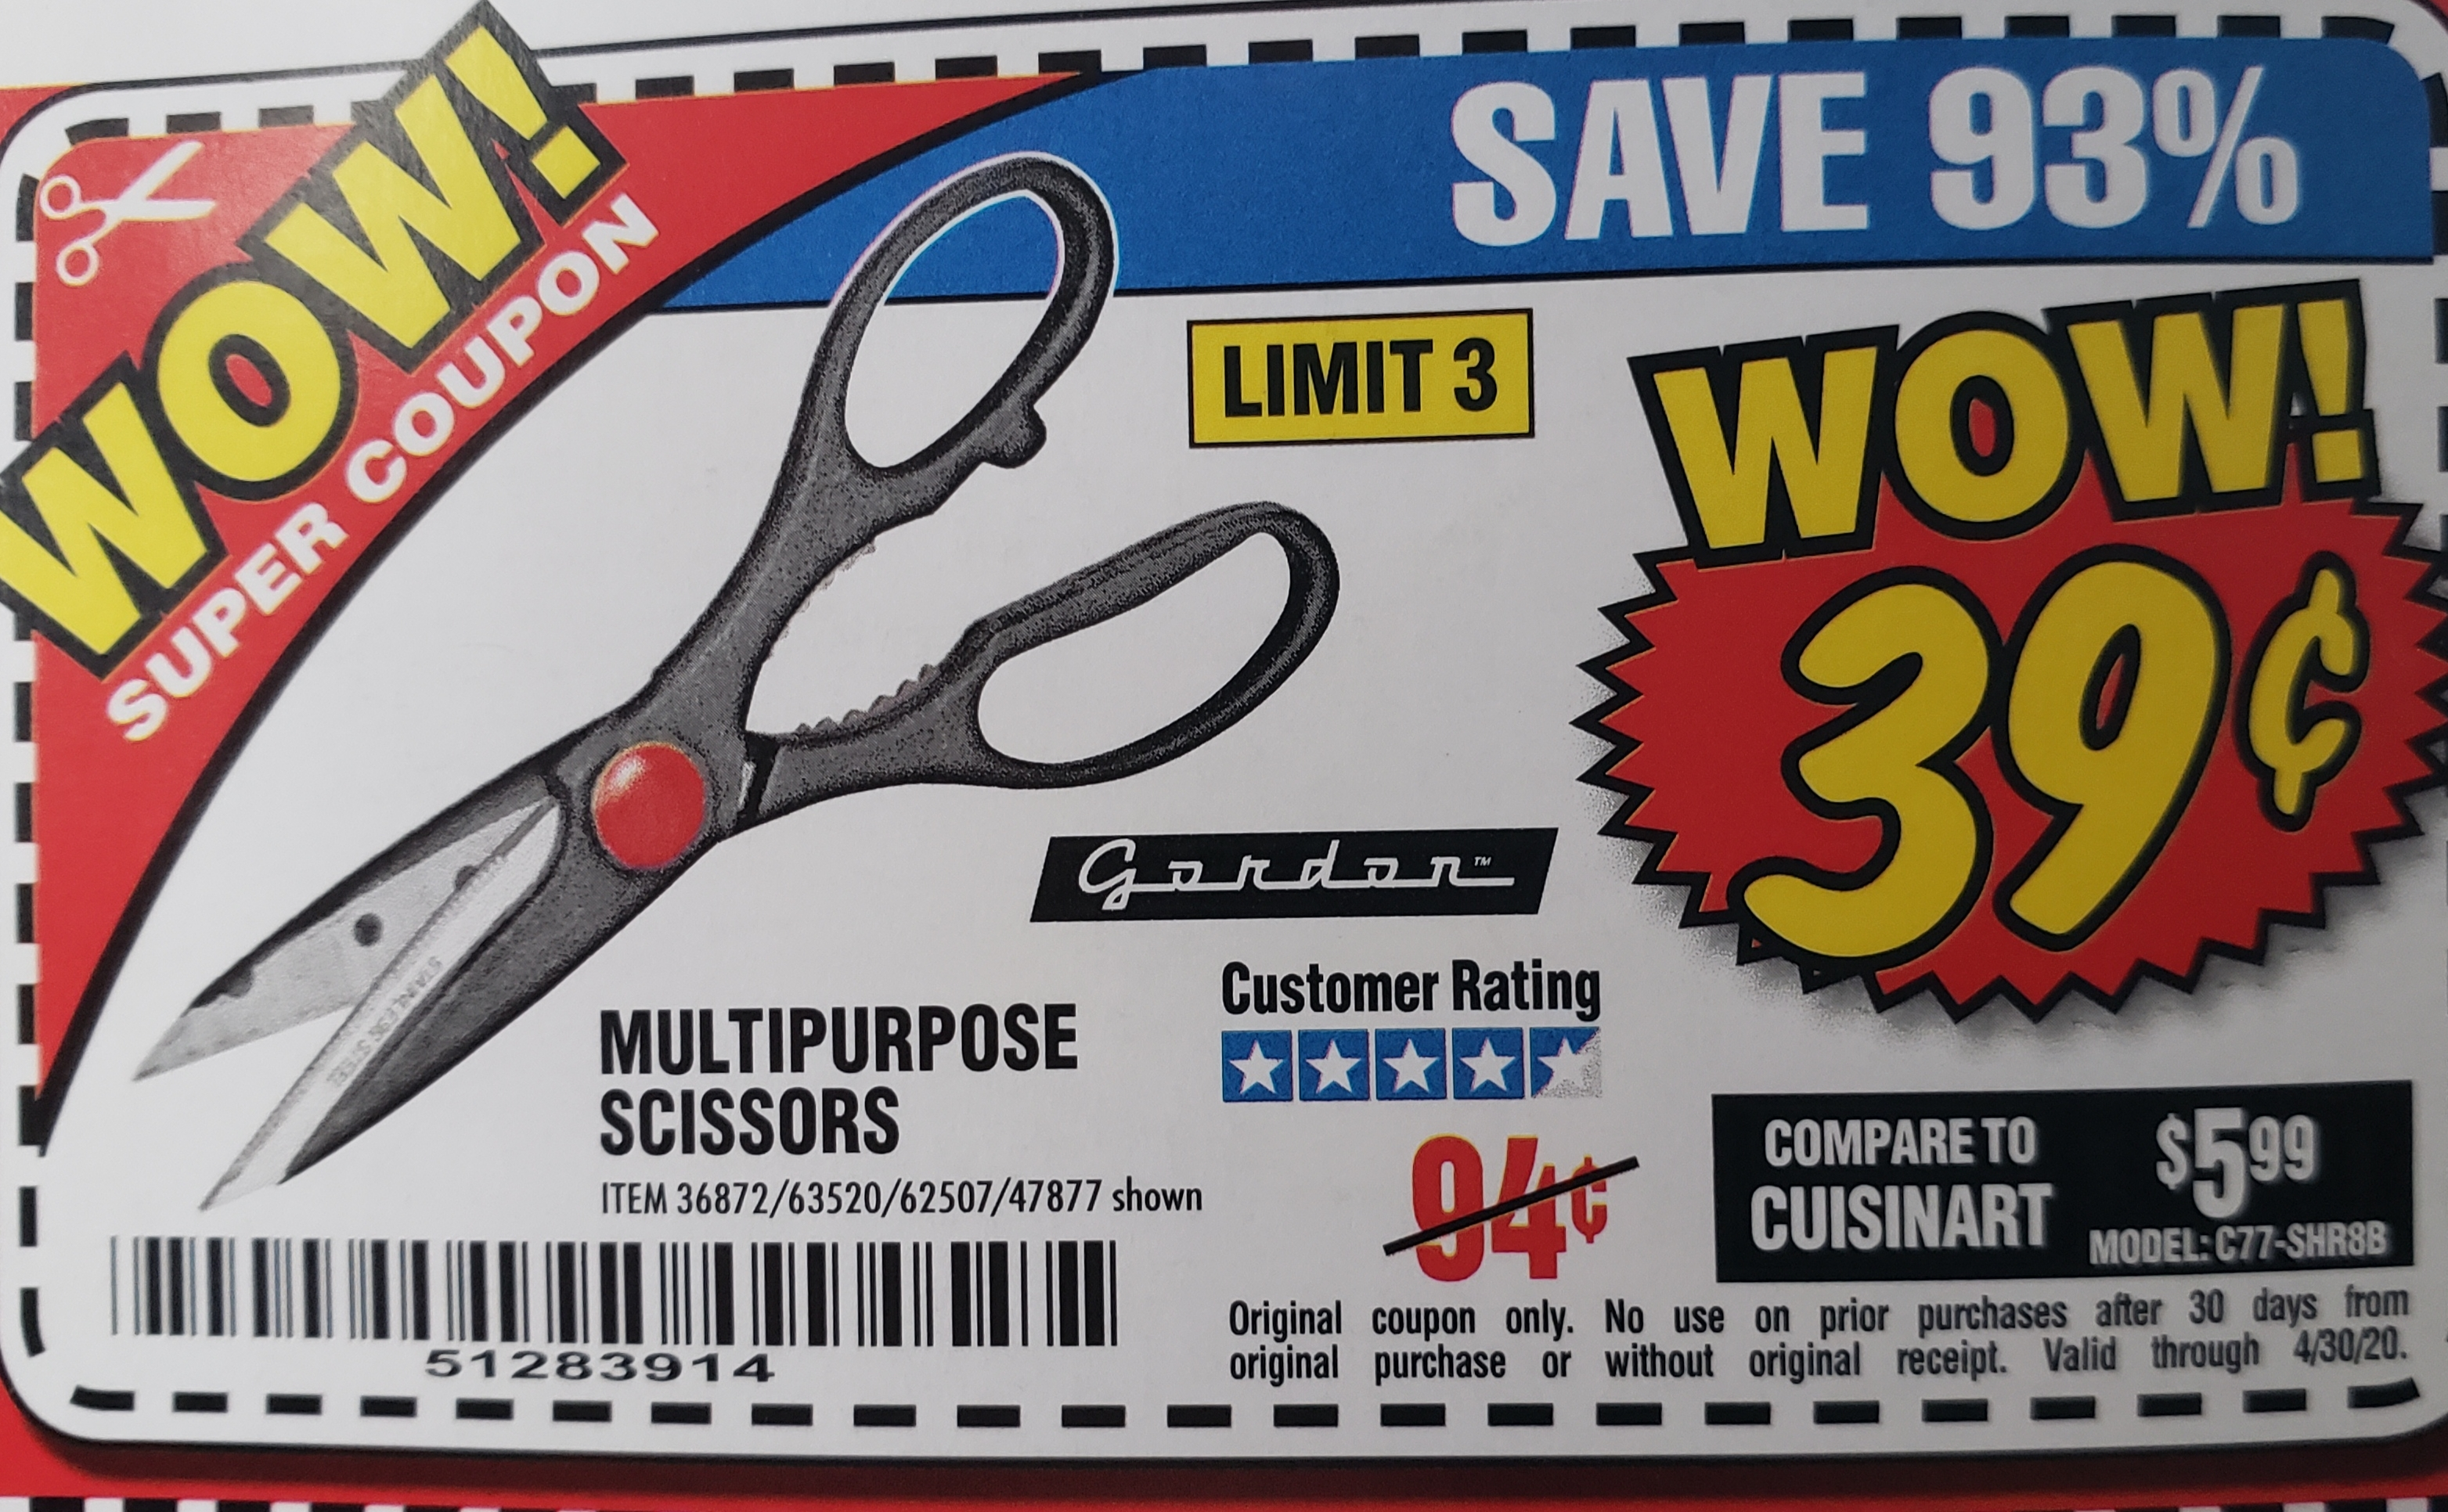 www.hfqpdb.com - MULTIPURPOSE SCISSORS Lot No. 36872/47877/67405/60274/62507